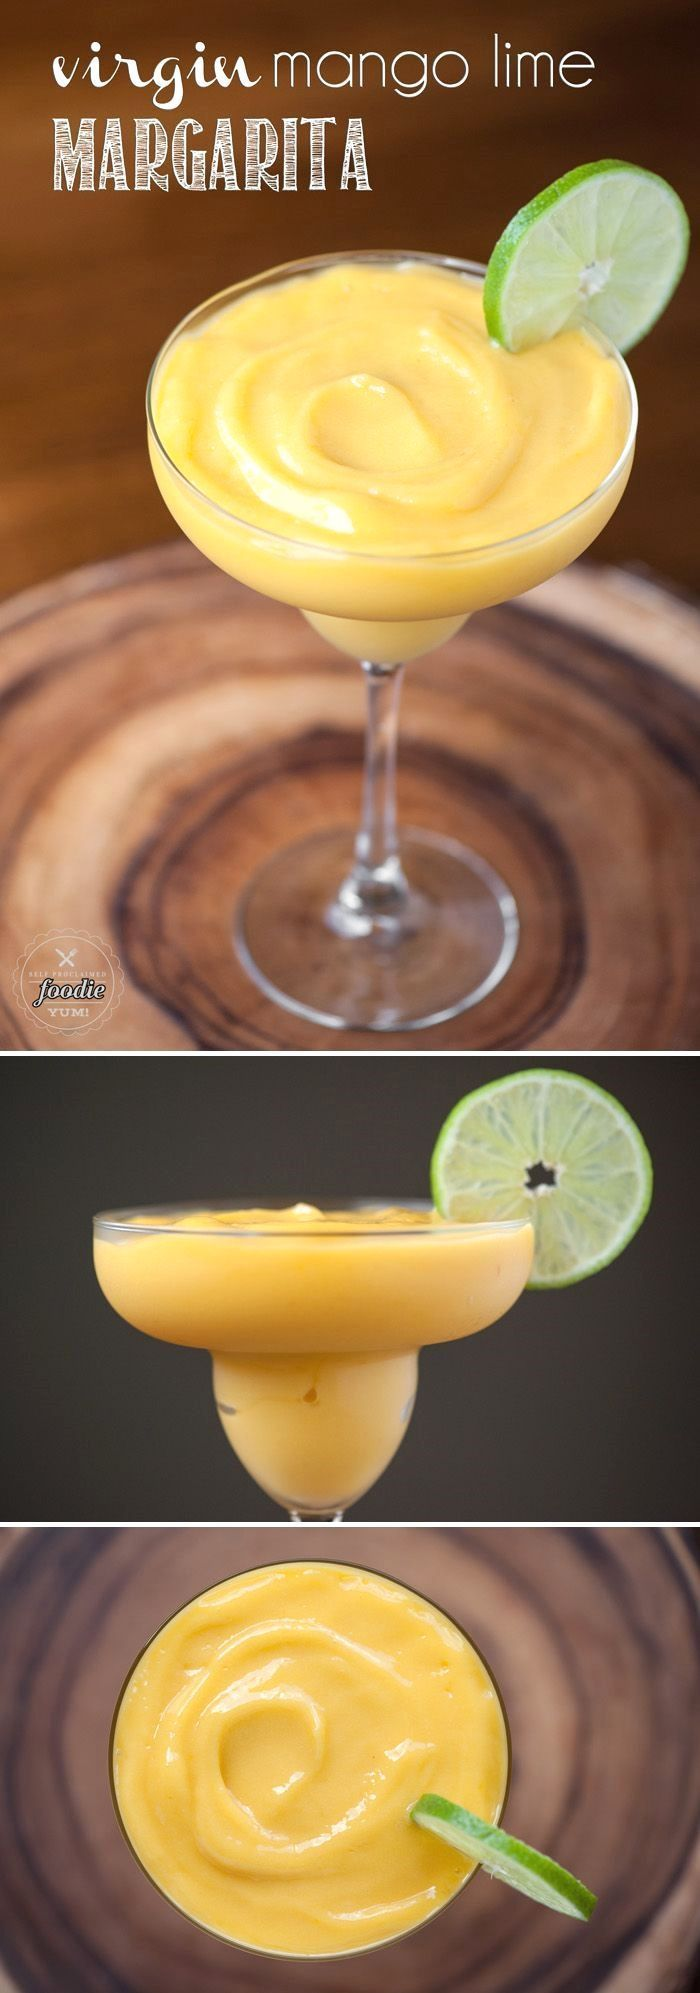 This non-alcoholic kid friendly Virgin Mango Lime Margarita takes only minutes t... - #Friendly #kid #Lime #Mango #Margarita #Minutes #NonAlcoholic #Takes #virgin #limemargarita This non-alcoholic kid friendly Virgin Mango Lime Margarita takes only minutes t... - #Friendly #kid #Lime #Mango #Margarita #Minutes #NonAlcoholic #Takes #virgin #limemargarita This non-alcoholic kid friendly Virgin Mango Lime Margarita takes only minutes t... - #Friendly #kid #Lime #Mango #Margarita #Minutes #NonAlcoho #limemargarita